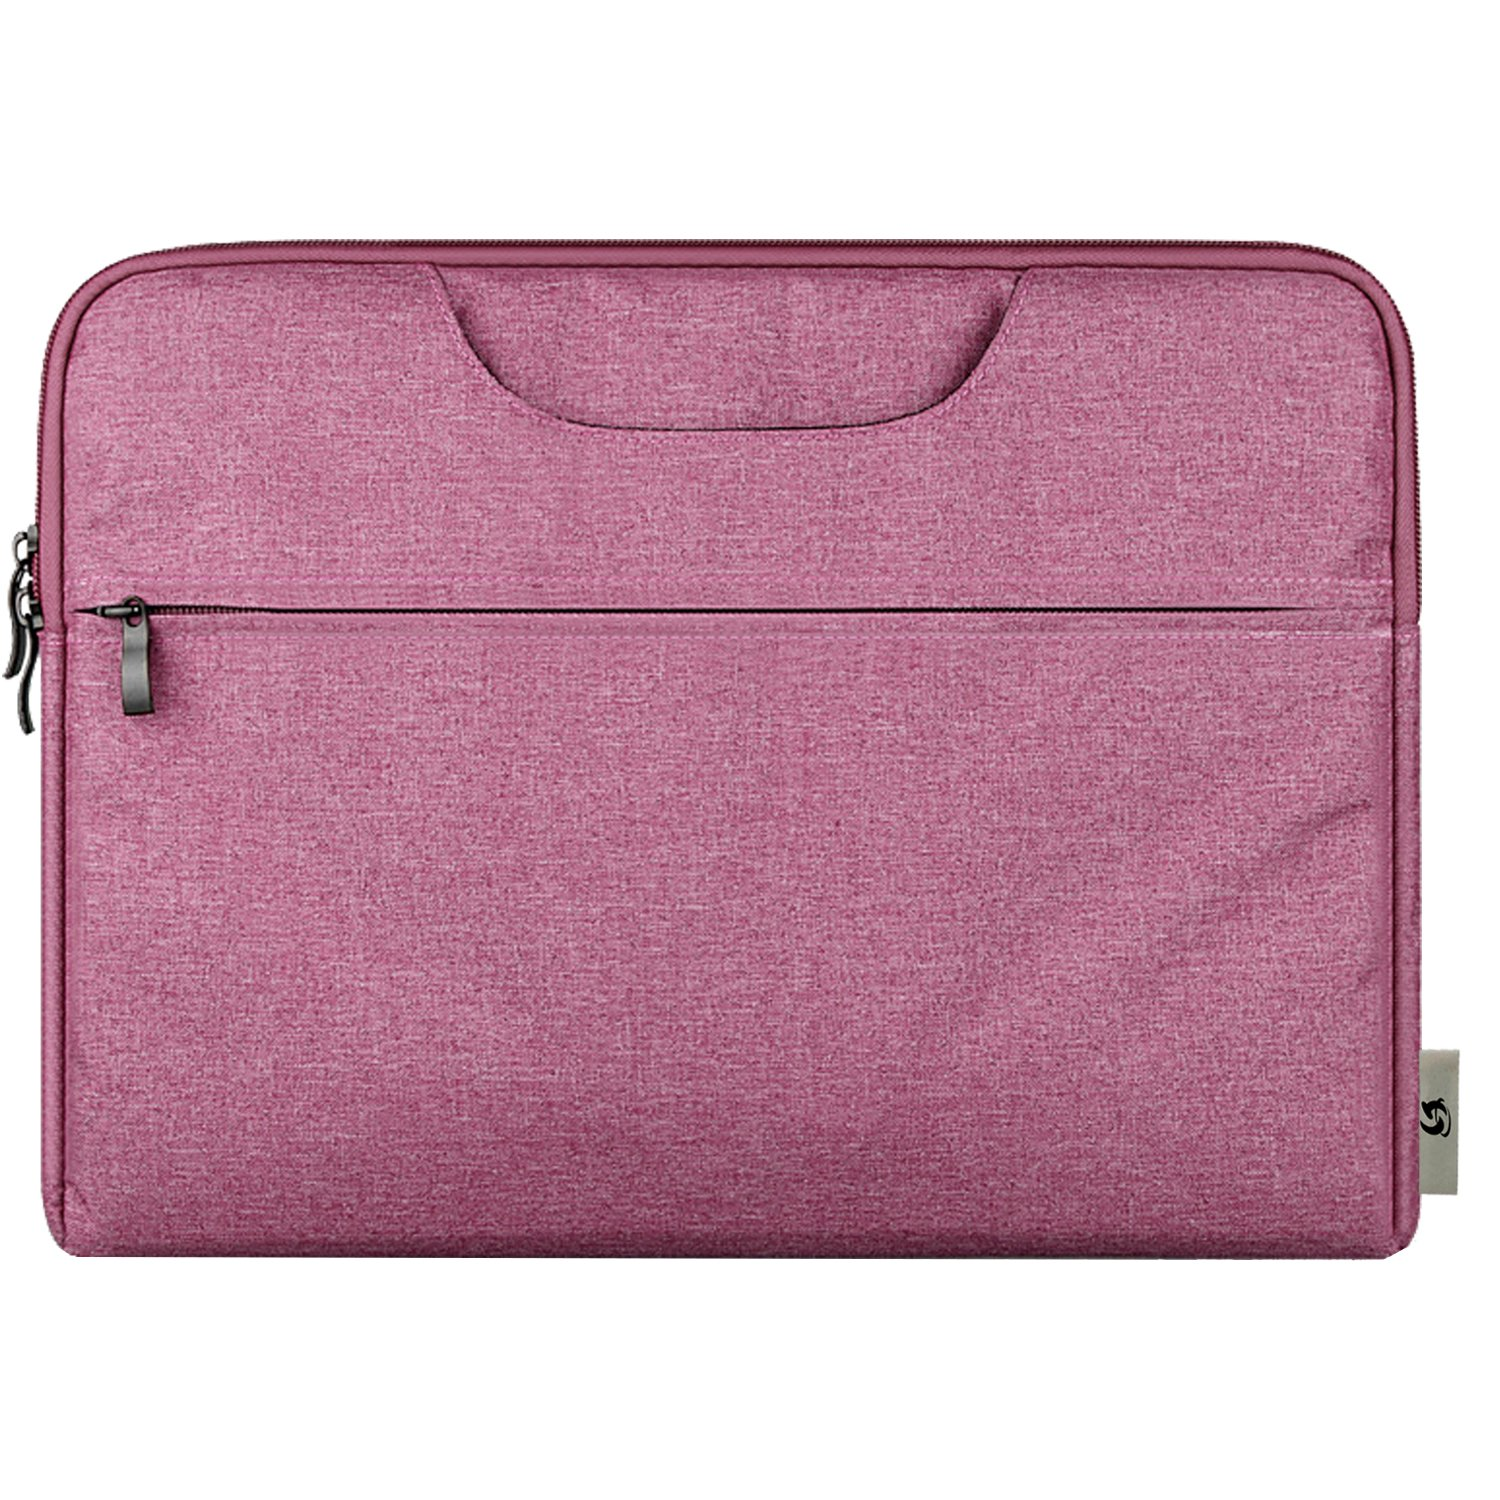 Amazon.com: Litop 11-11.6 Inch Waterproof Fabric Notebook Sleeve Laptop Bag Case with Handle for Apple MacBook Air 11.6-inch Ultrabook Acer Asus Dell HP ...